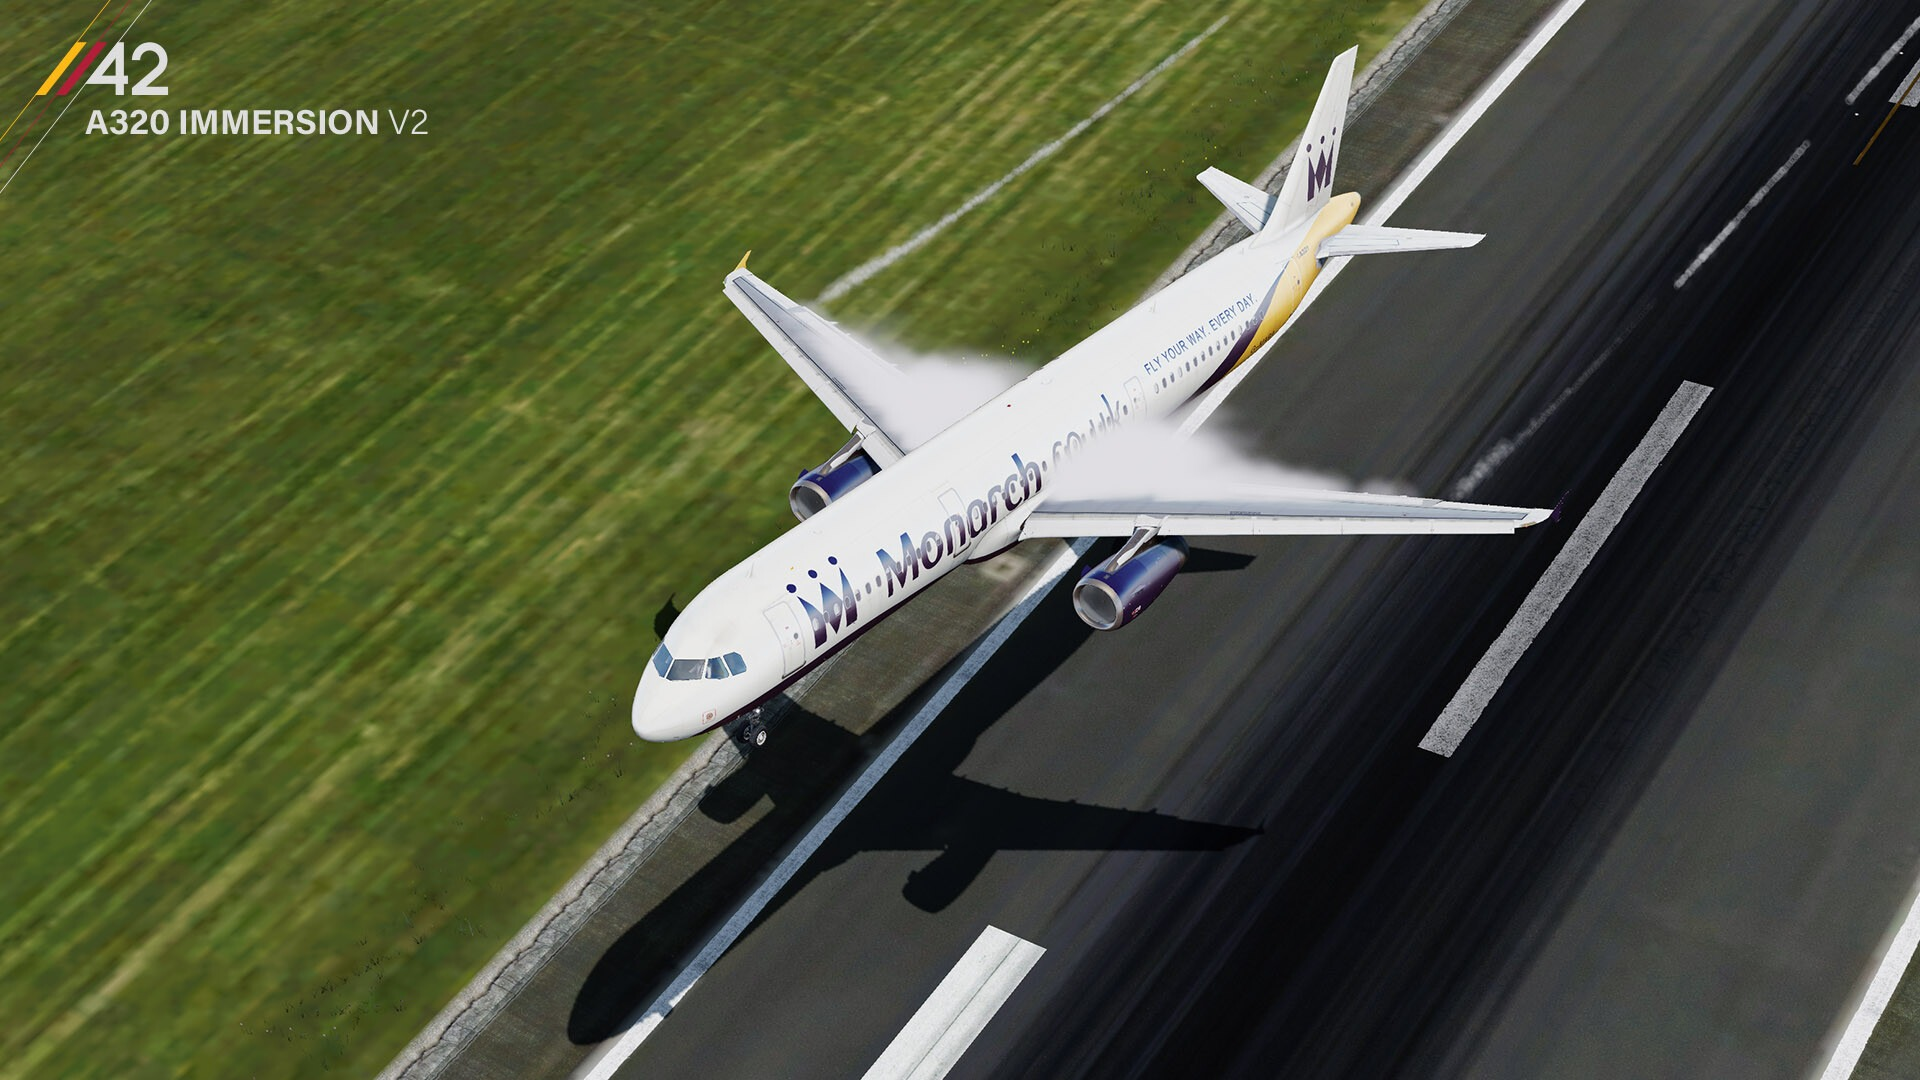 Parallel-42-A320-Immersion-V2-2 Parallel 42 Aerosoft A320 Immersion V2 Released